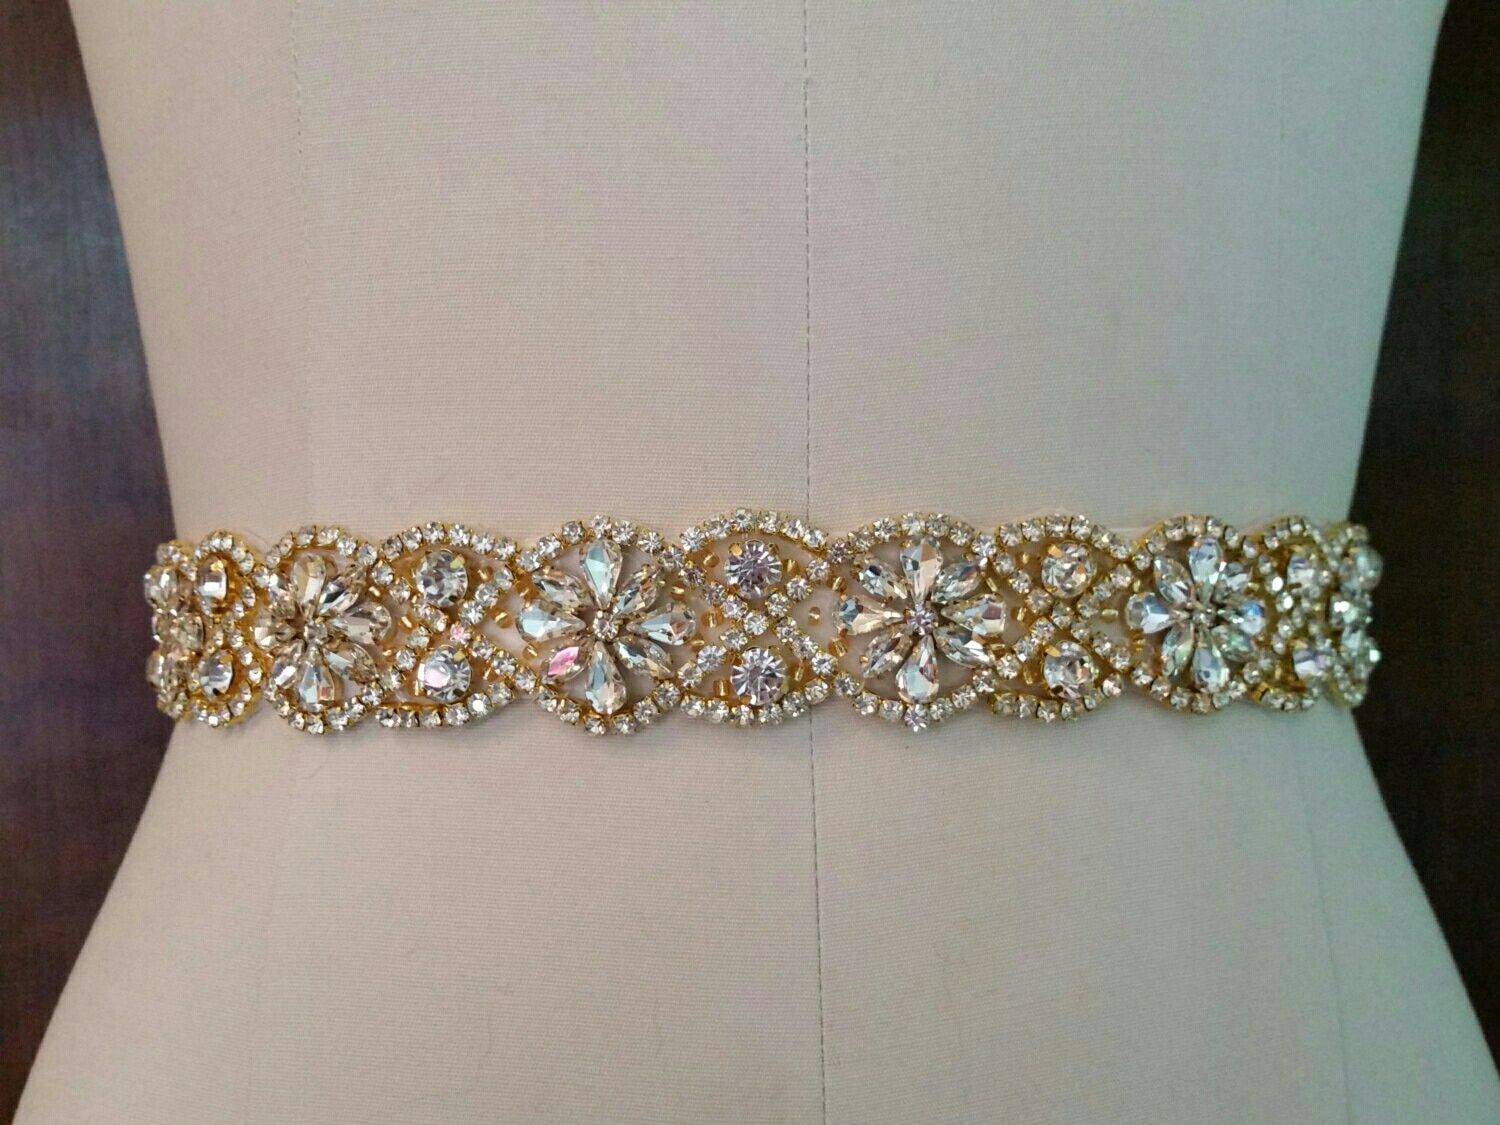 Pin by Felicia Gooden on rhinestone belts  a5a467f36715